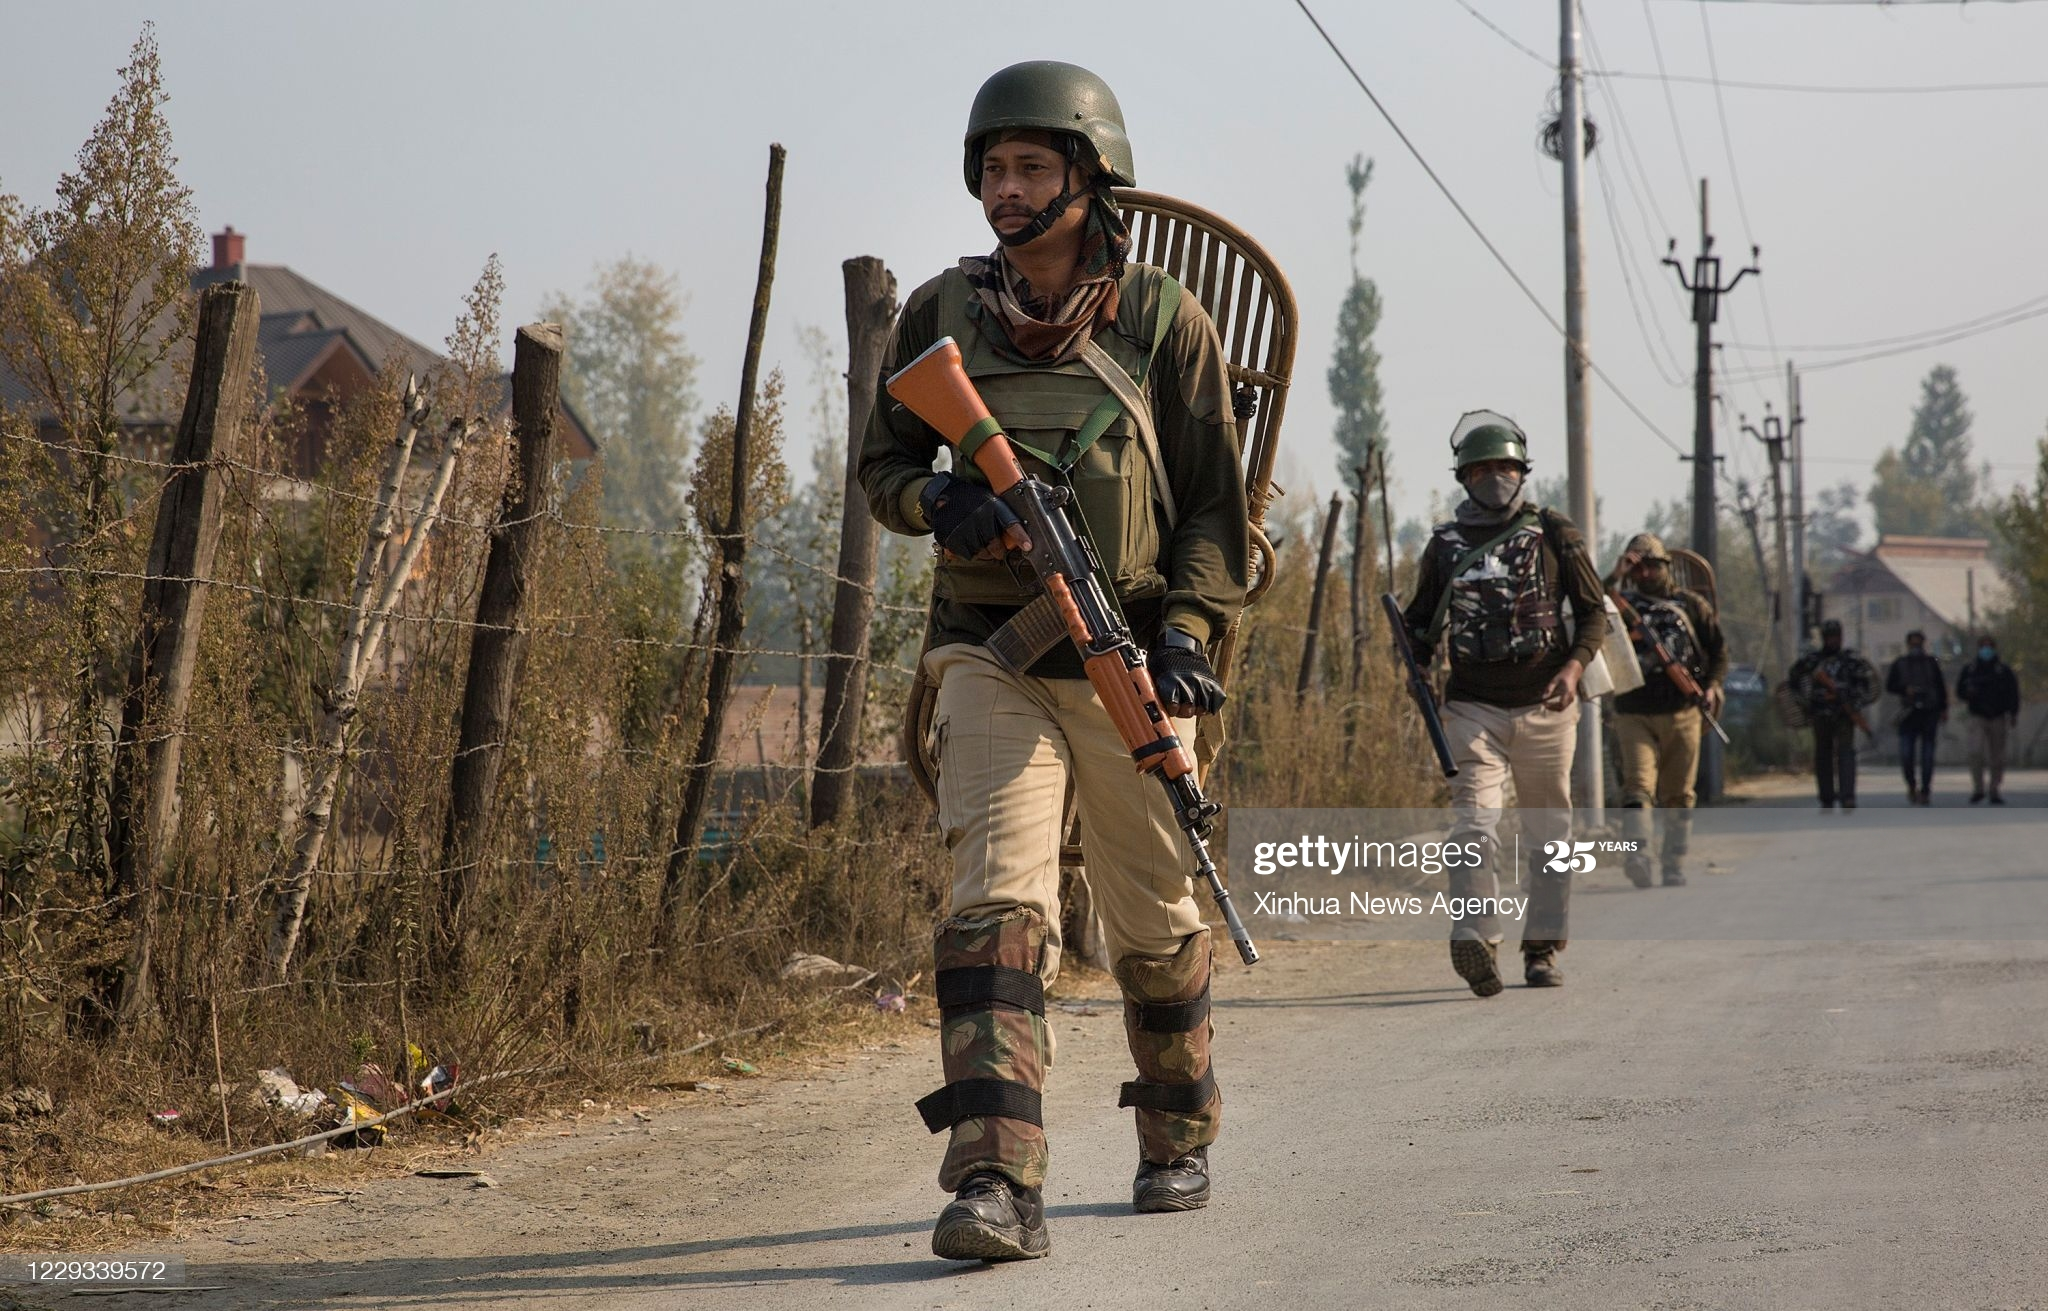 India's Counterterror Agency Raids Human Rights Activists, Journalists in Kashmir, New Delhi